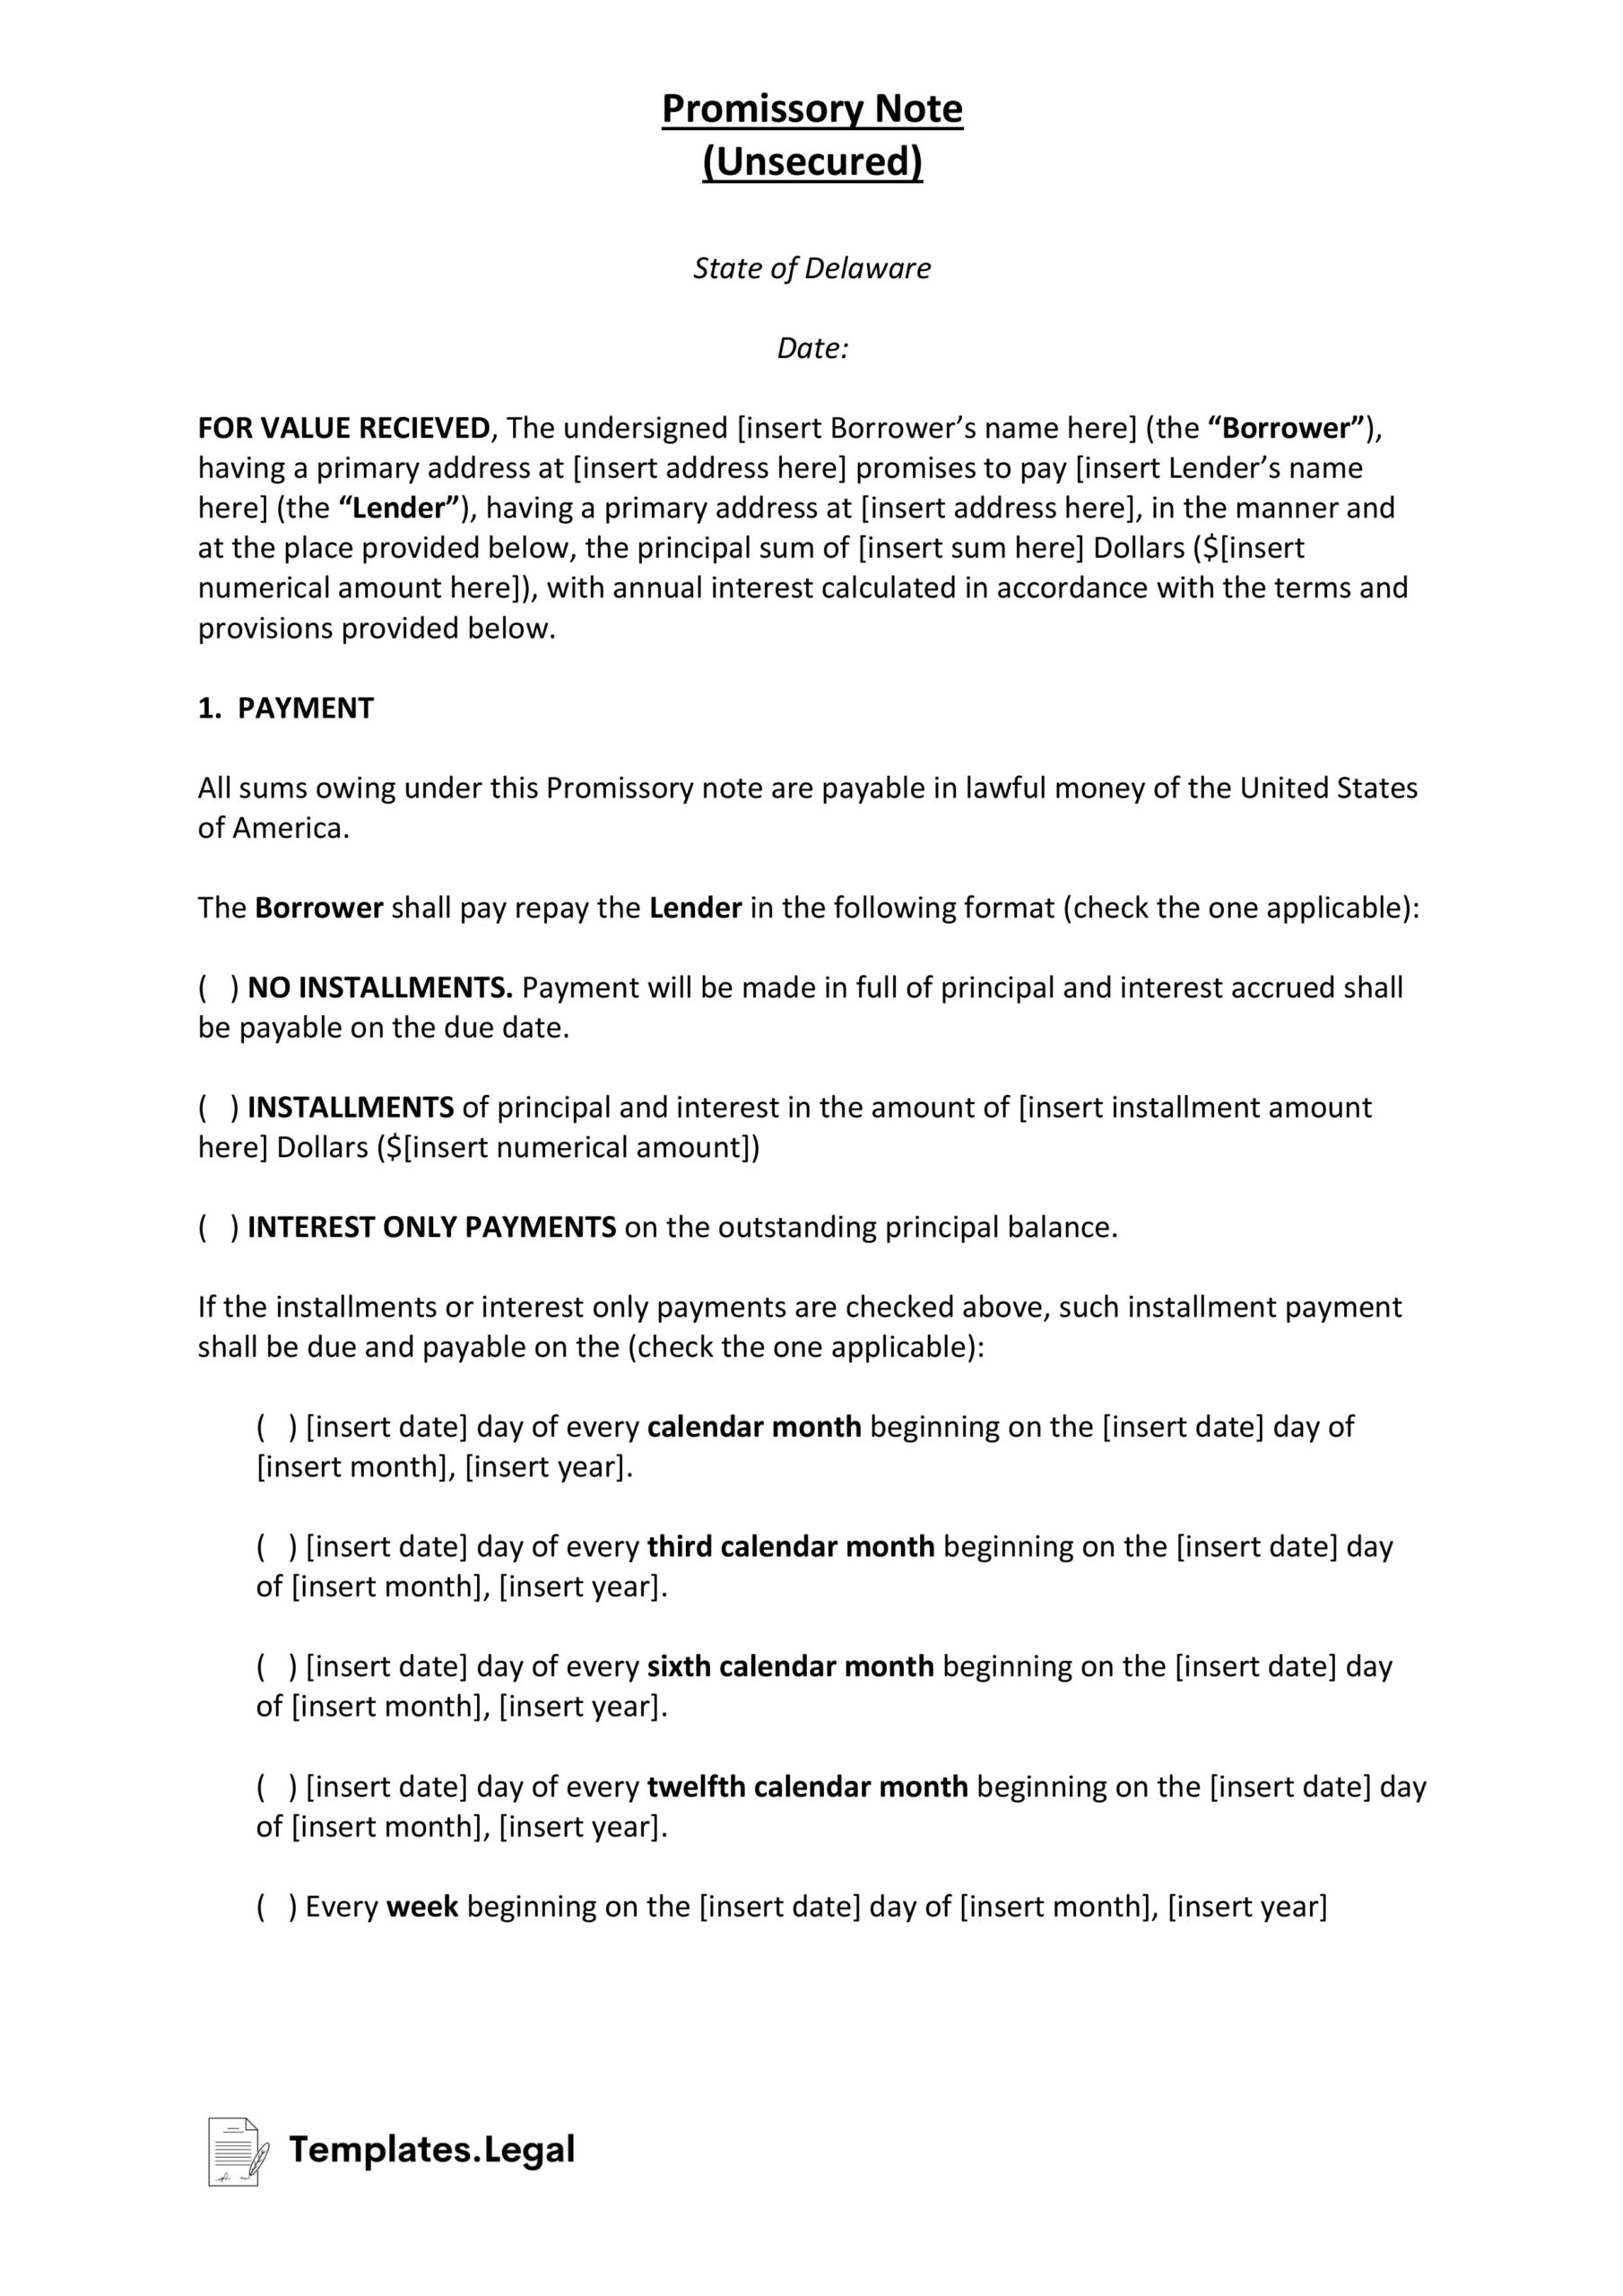 Delaware Unsecured Promissory Note - Templates.Legal